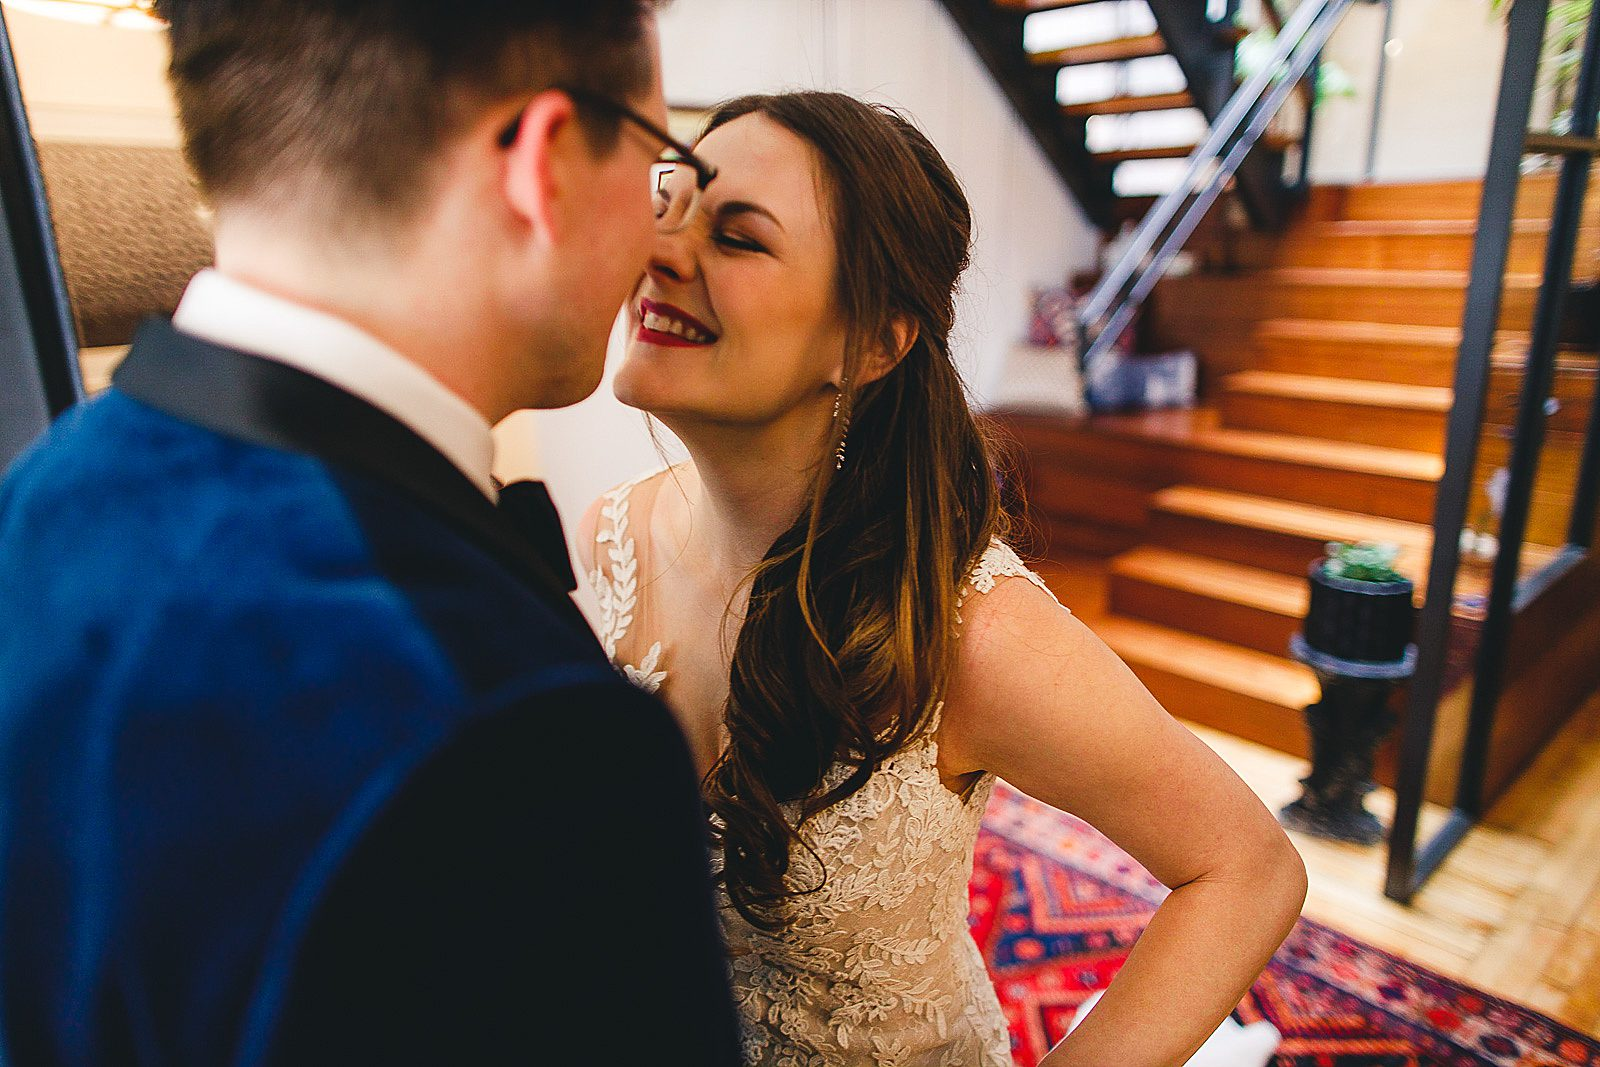 12 chicago wedding photograhy - The Wedding of Samantha + Kyle in Chicago